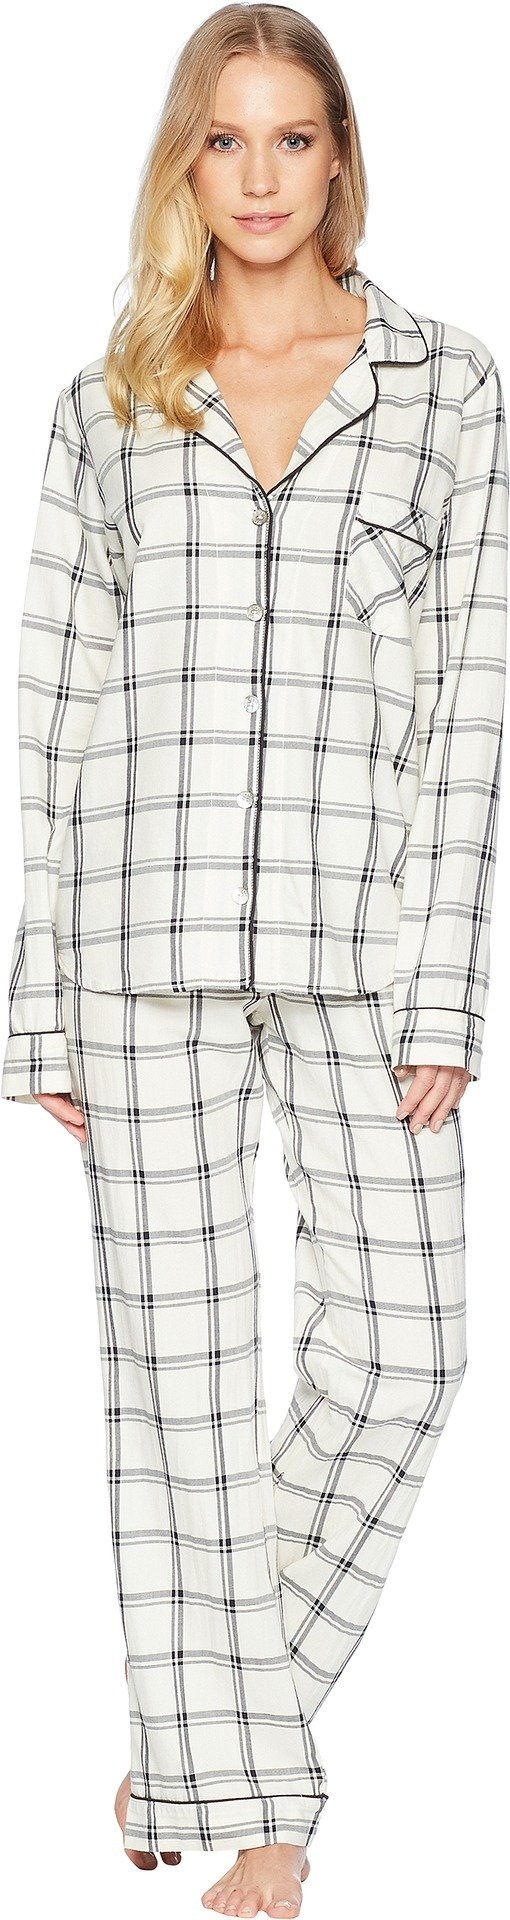 UGG Womens Raven Plaid PJ Set Cream/Black MD